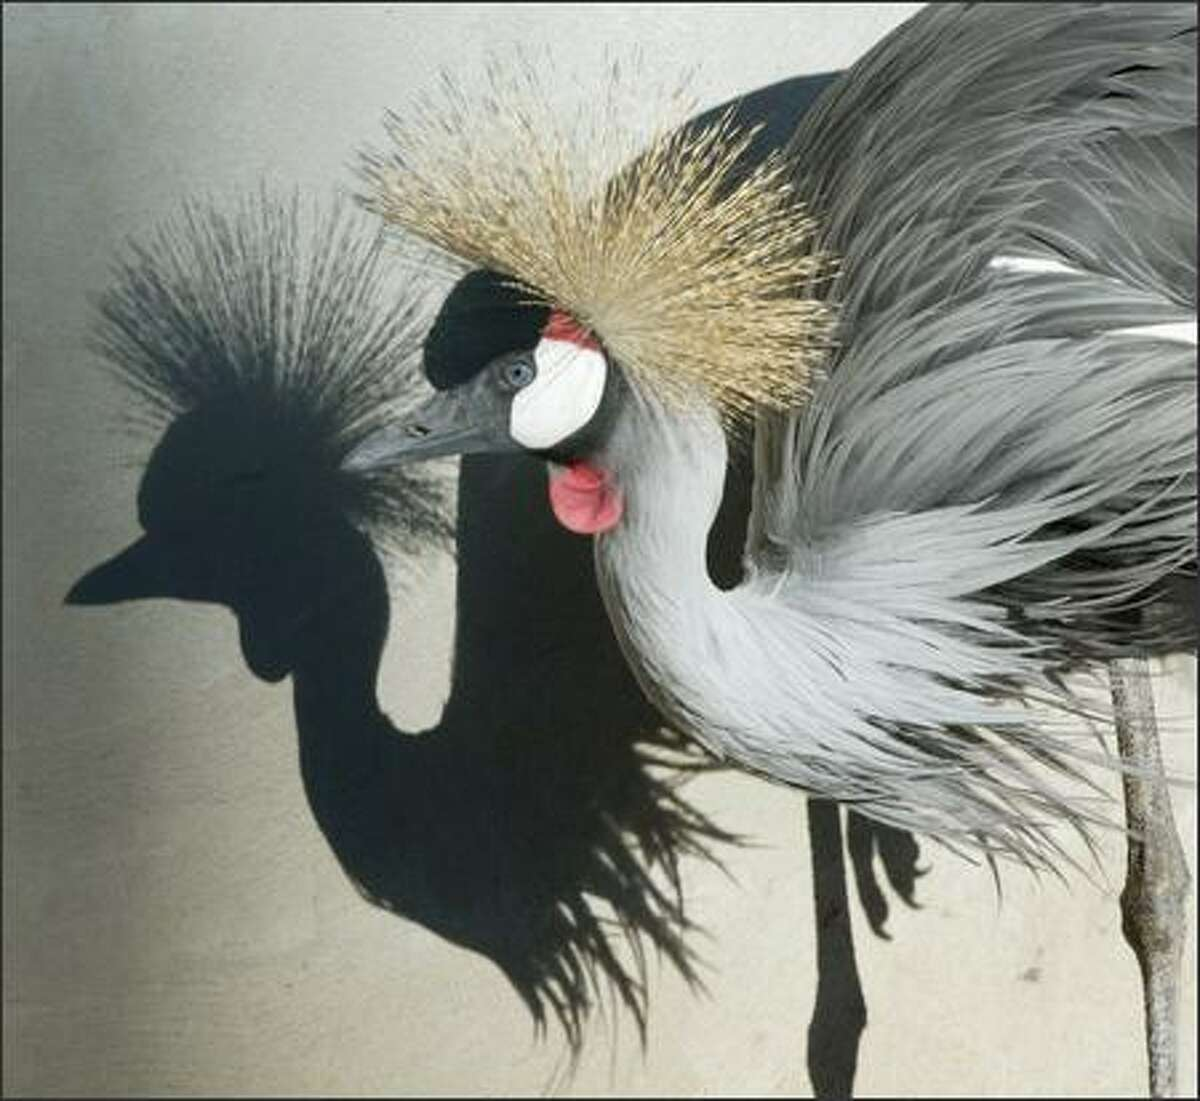 Crowned cranes use mixed wetland-grassland habitats for nesting and foraging.